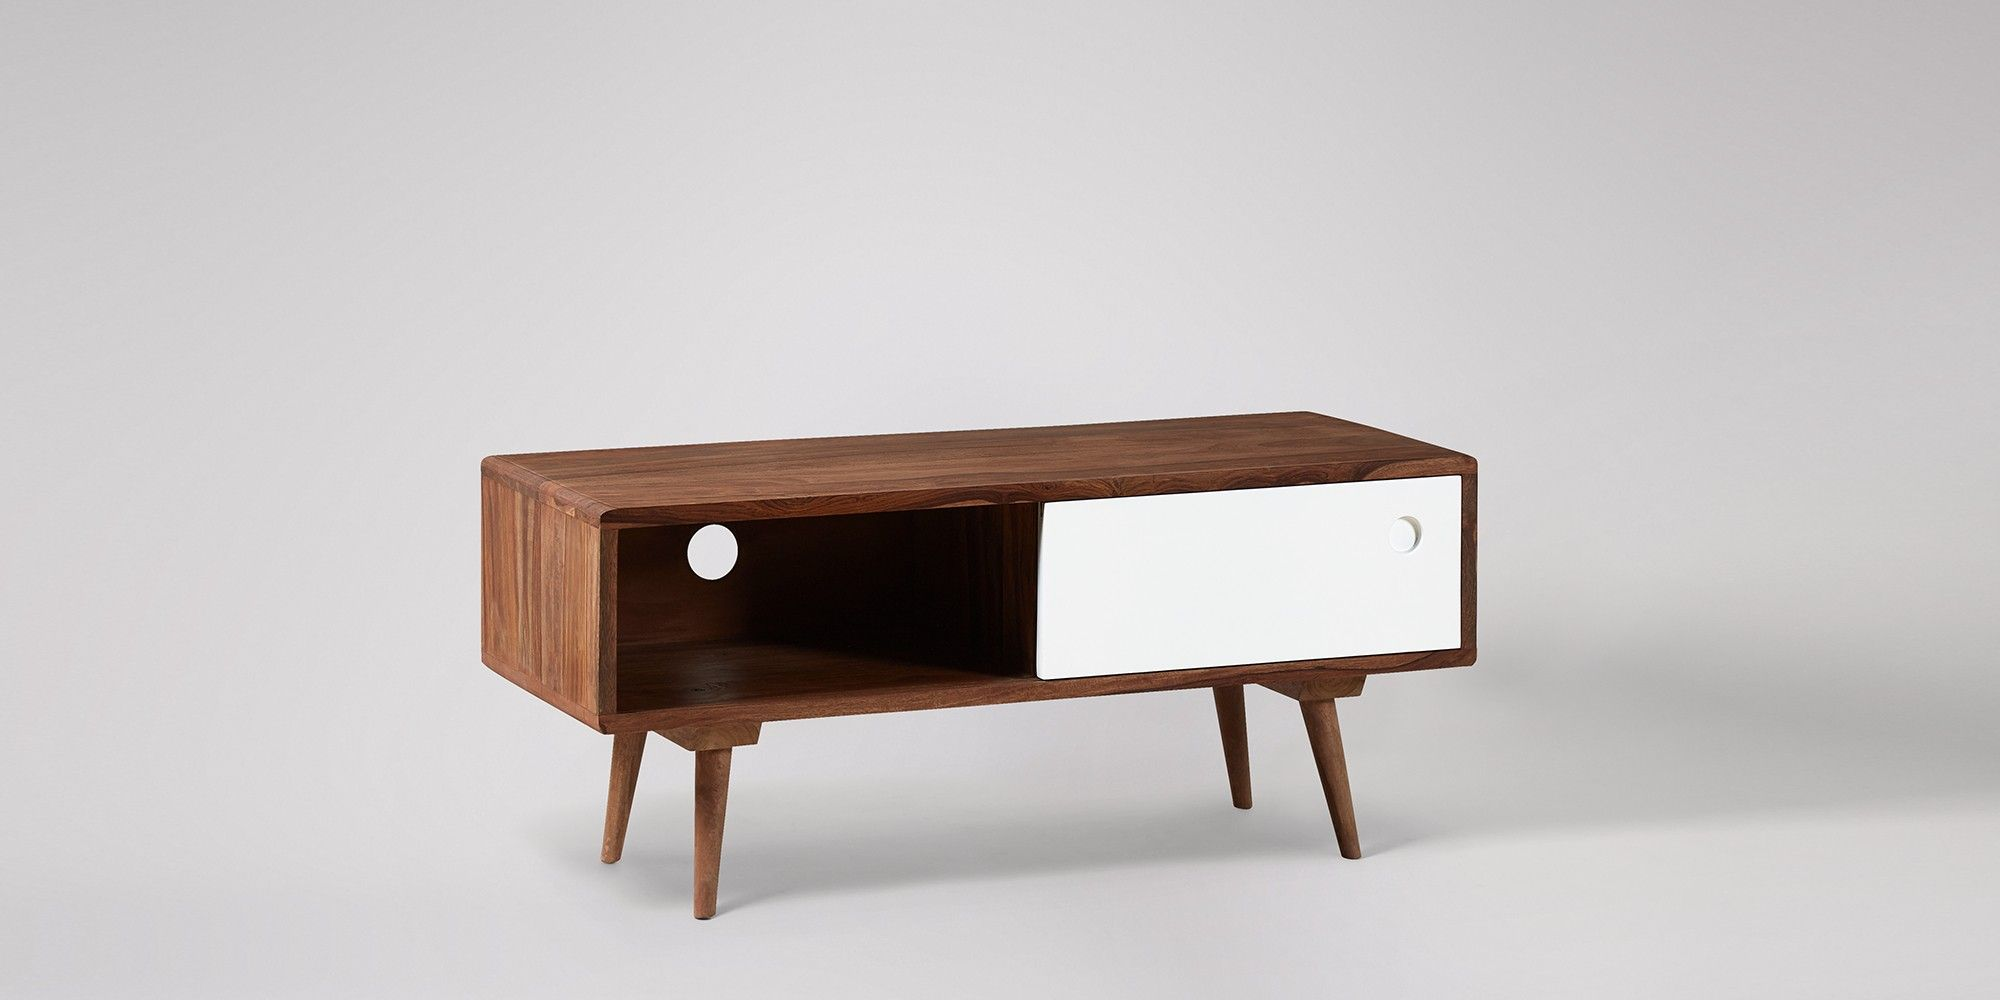 Swoon Editions Media unit, mid-century style in rosewood & white - £199